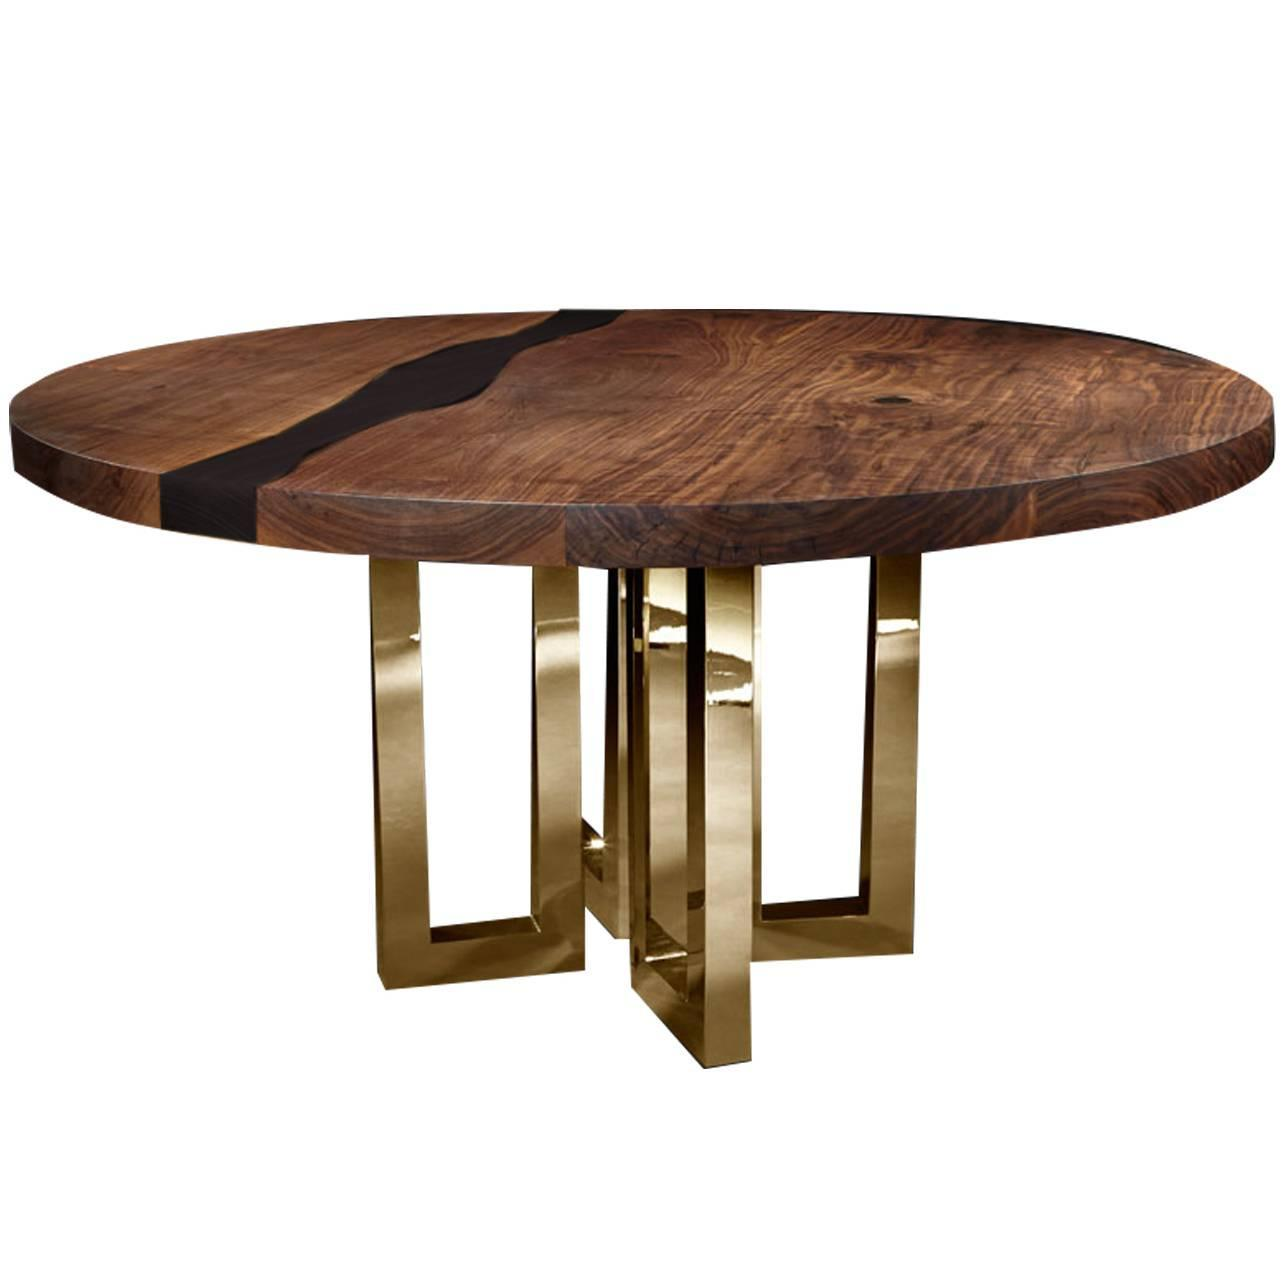 Round Dining Room Table For 6: Il Pezzo 6 Round Table Black At 1stdibs